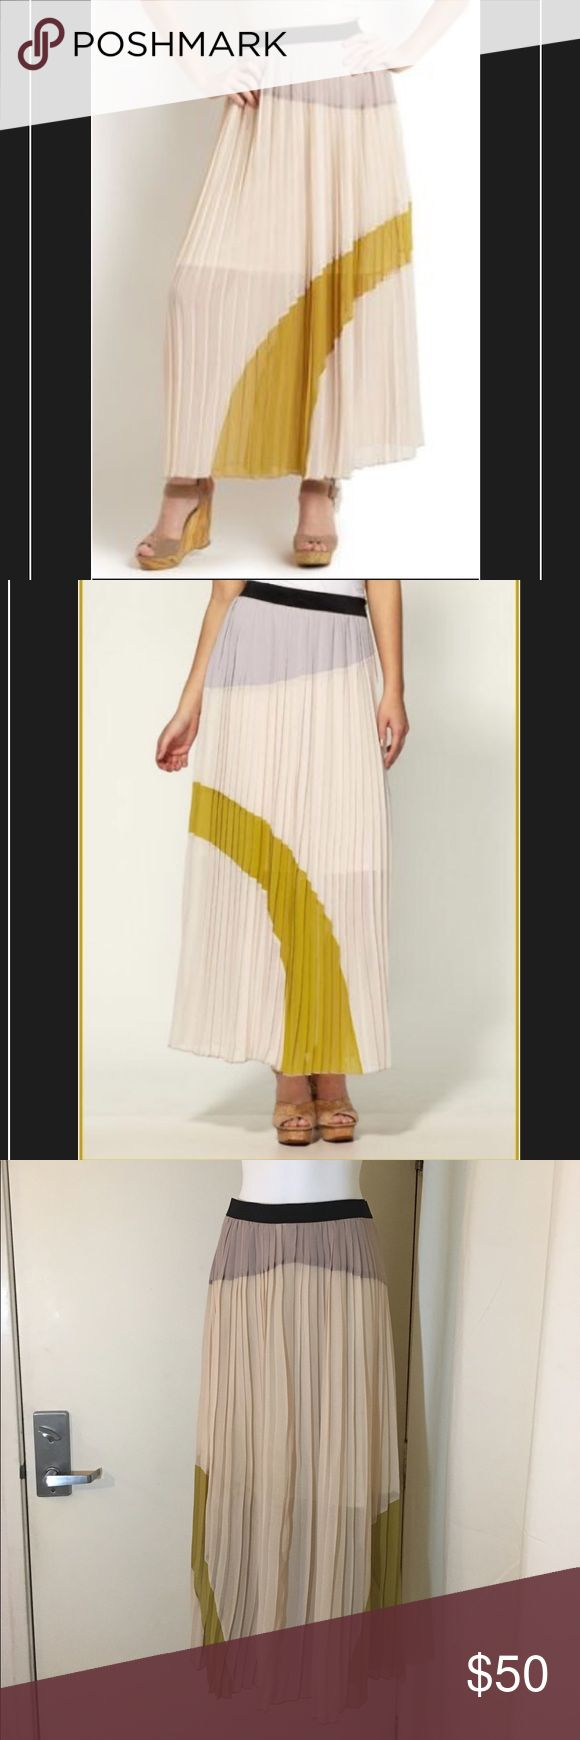 ARYN K LONG PLEATED CHIFFON MAXI SKIRT This ARYN K LONG PLEATED CHIFFON MAXI SKIRT is in new condition. Only used once. Flirty and fun, Aryn K skirts are just the right amount of elegant and playful. These skirts are flattering stylish & effortlessly chic whether styled up or down. This scene-stealing style features precision pleating on a sweeping, maxi silhouette. Polyester; lining: polyester/elastane Designed for a contemporary fit Banded waist, allover landscape print and pleating Ankle…